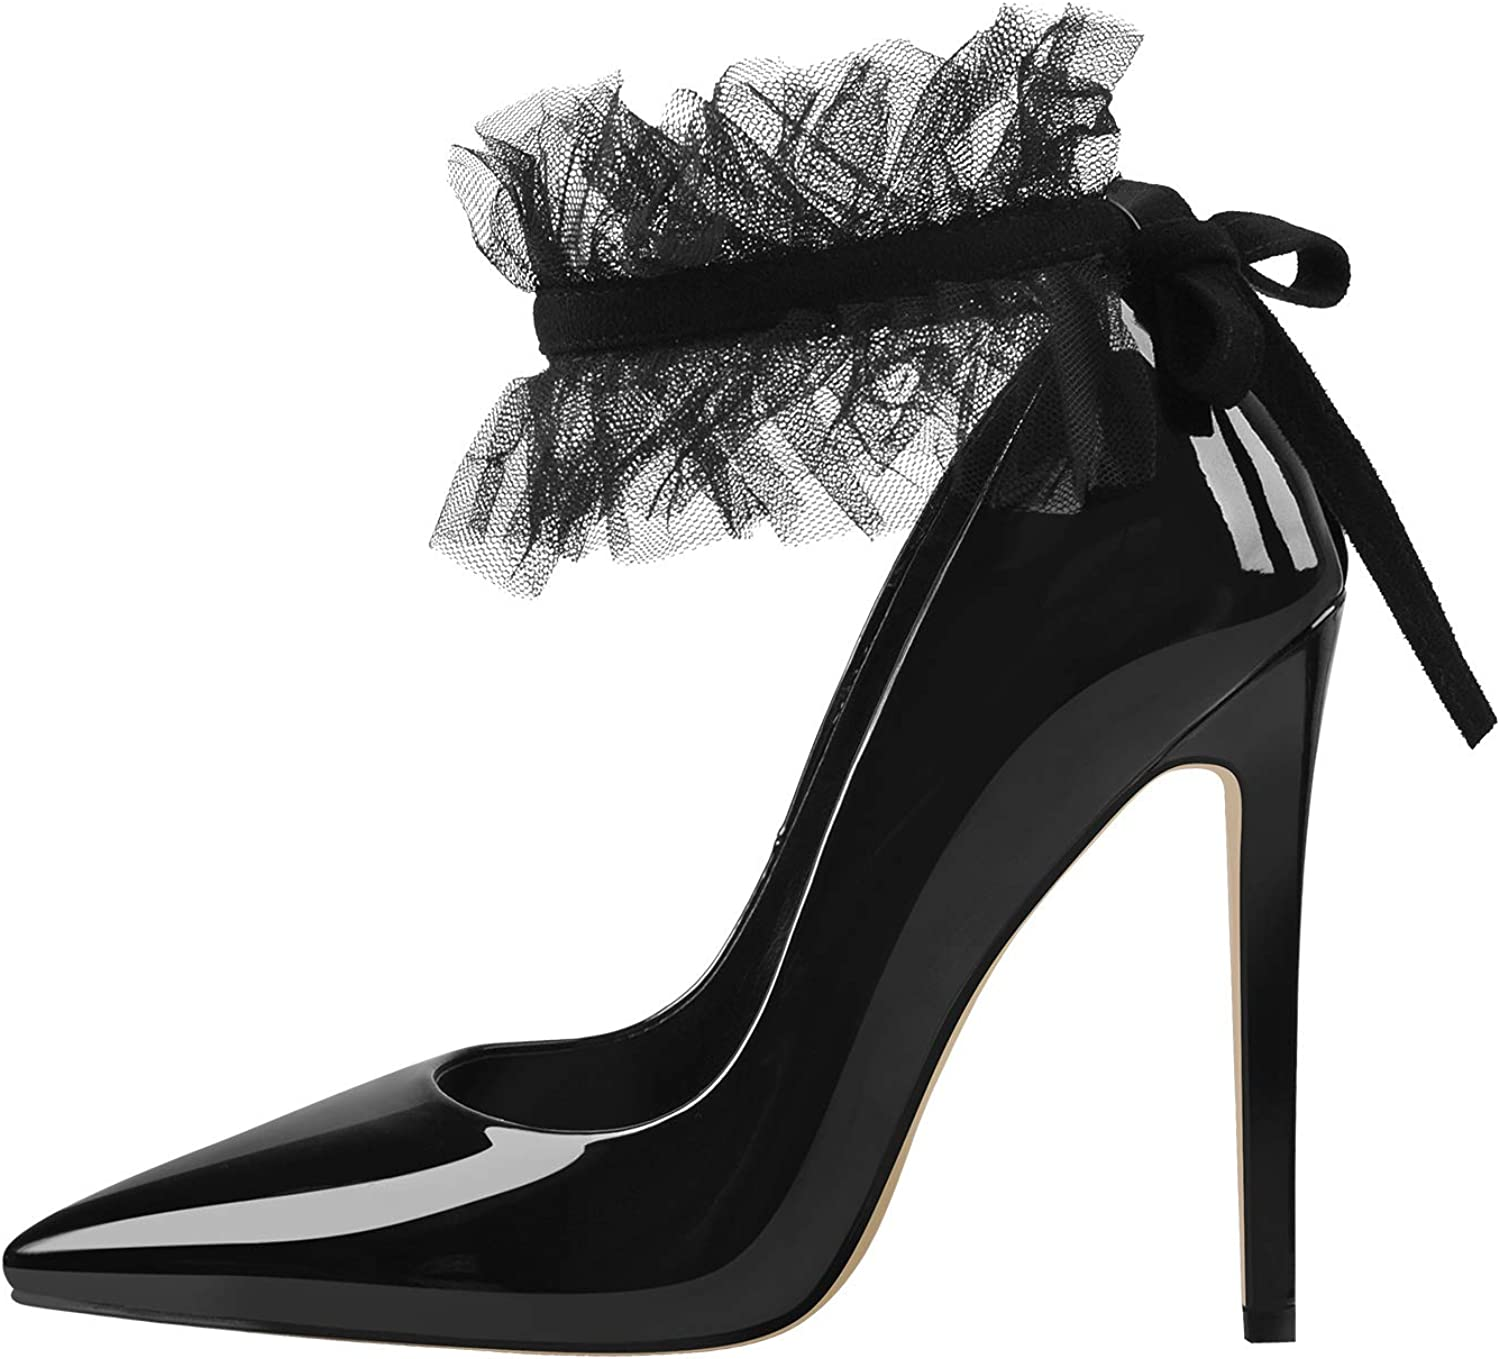 LISHAN Women's Pointed Toe Ankle Strap Lcae Up Stiletto Pumps